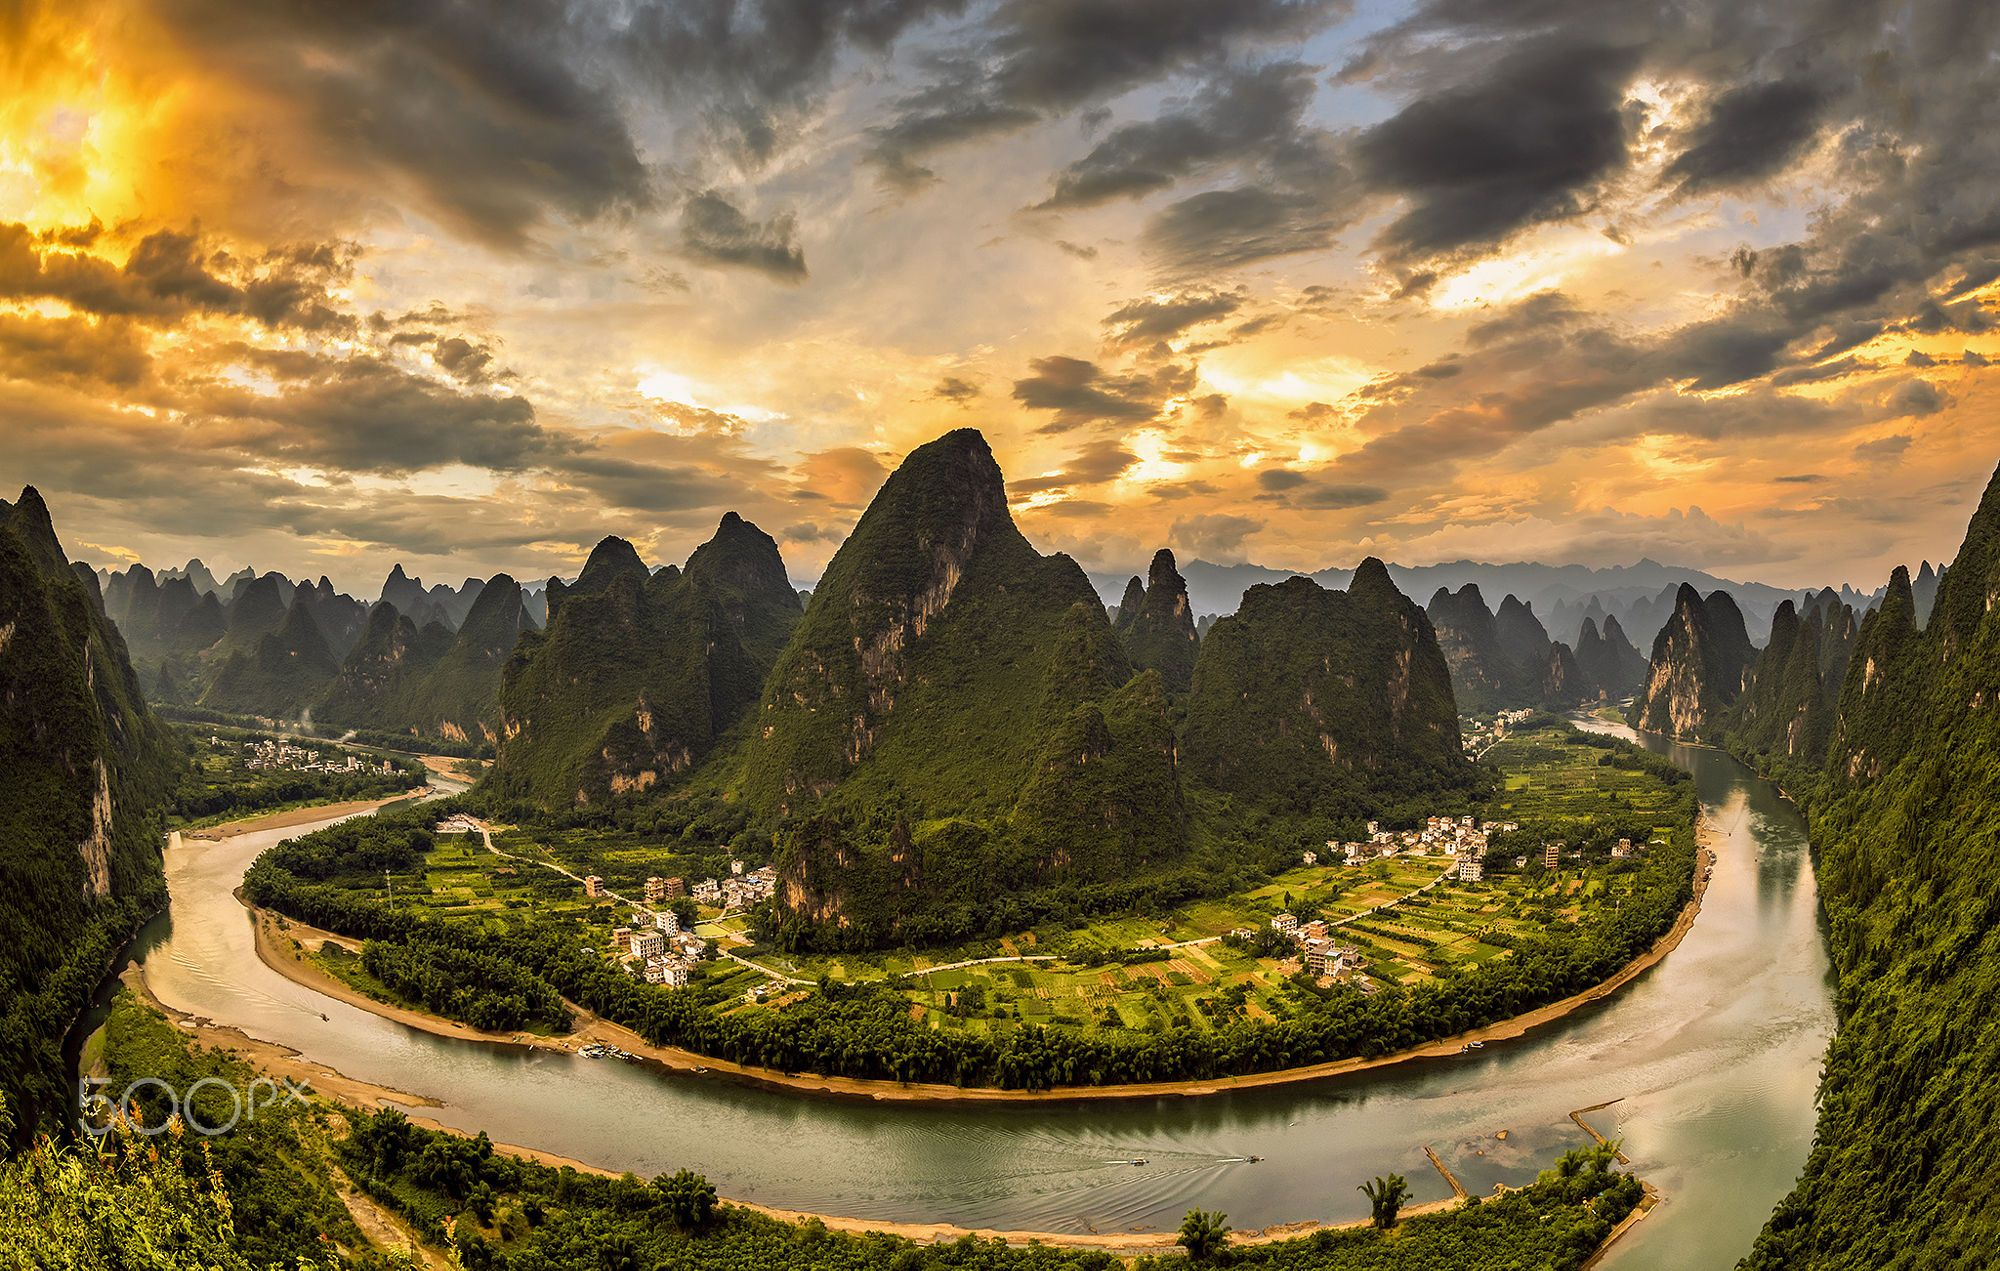 Landscape of Guilin Li River and Karst